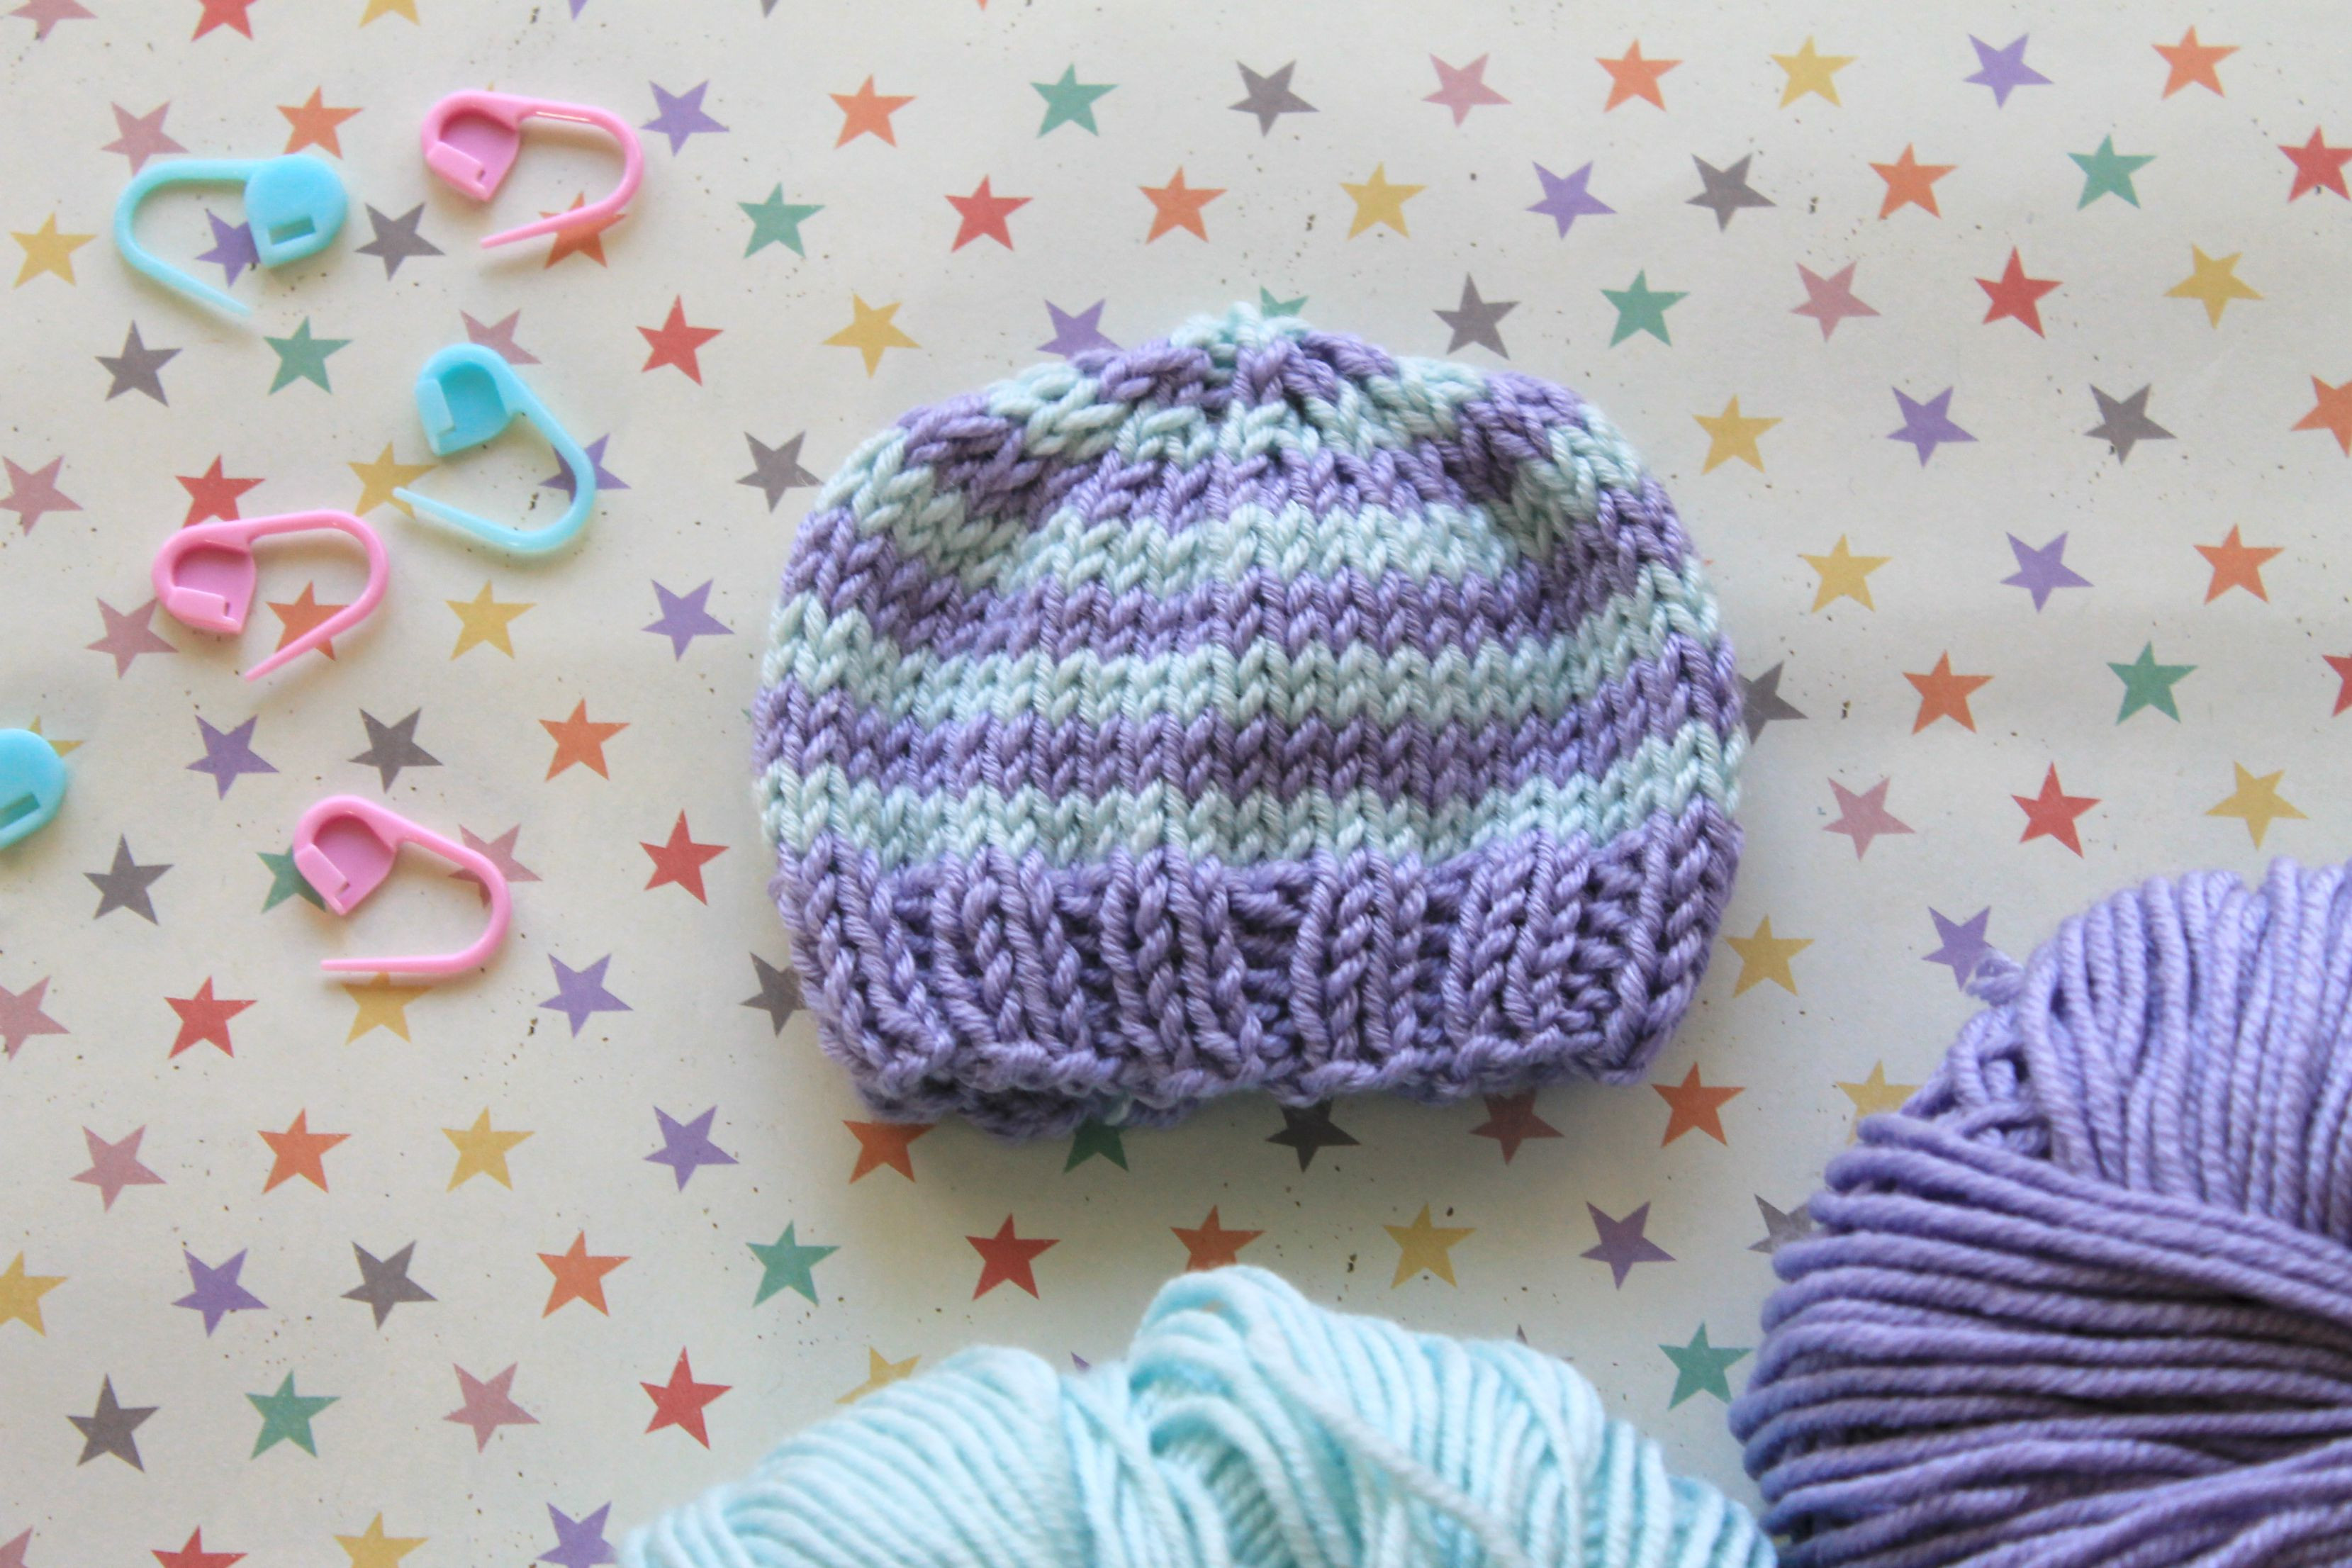 Baby Hat Knitting Pattern Inspirational Knit by Bit the Perfect Preemie Baby Hat • Loveknitting Blog Of New 44 Pictures Baby Hat Knitting Pattern